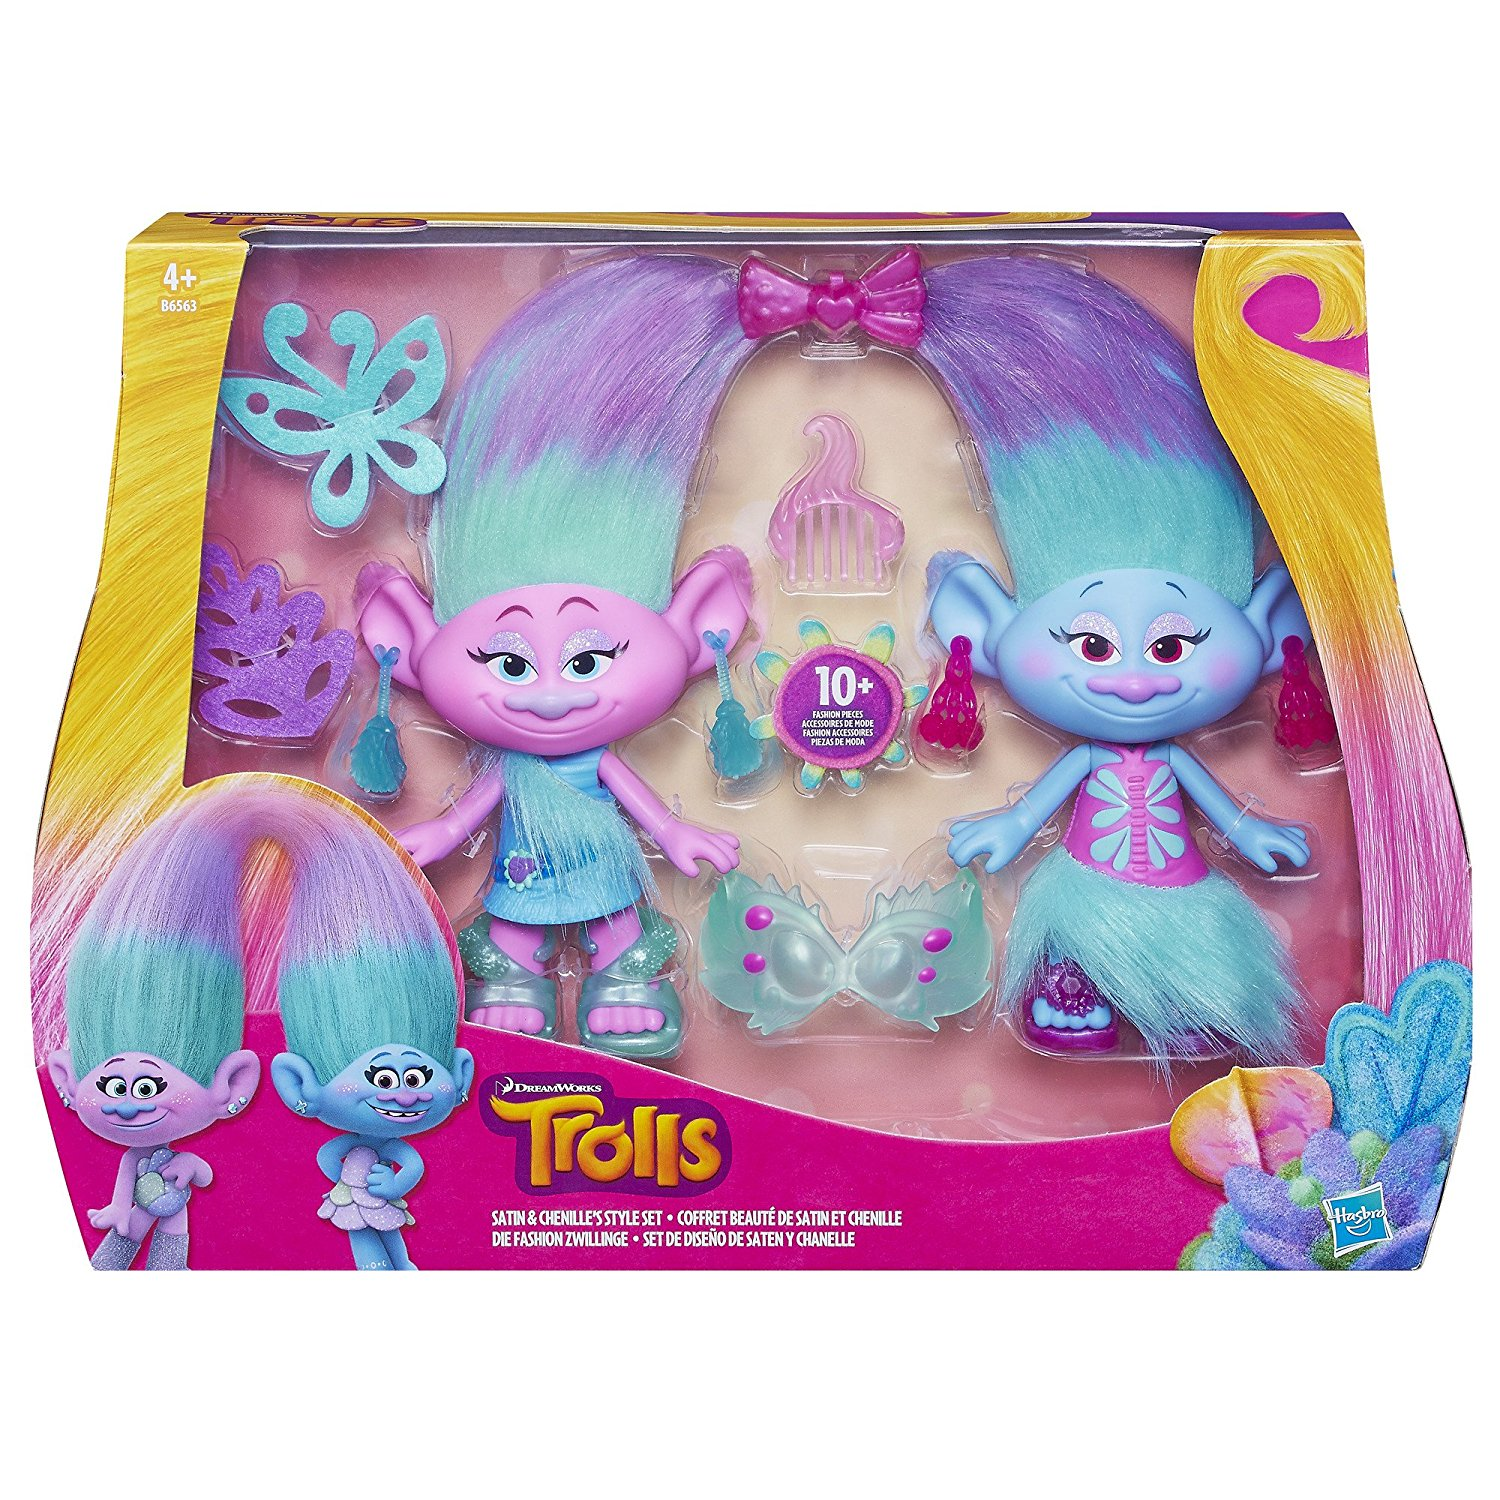 Trolls - Set de diseño Saten y Chanelle